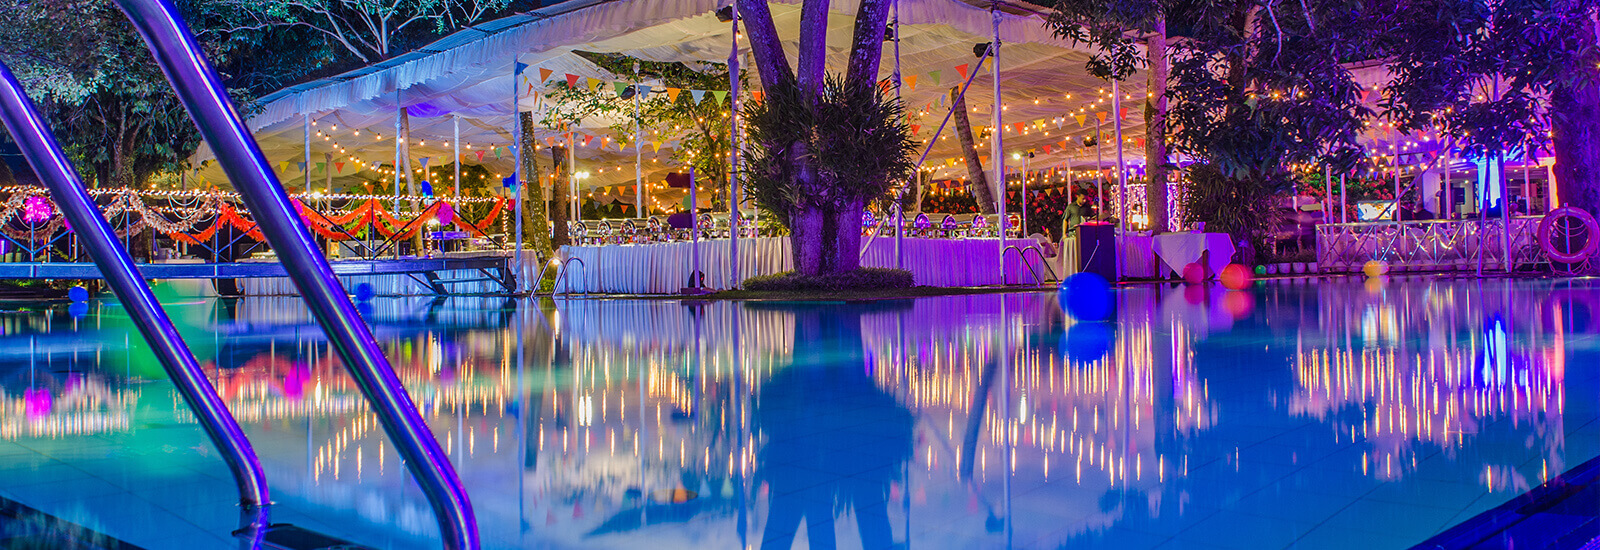 Night Events by the Pool at Mahaweli Reach Hotel